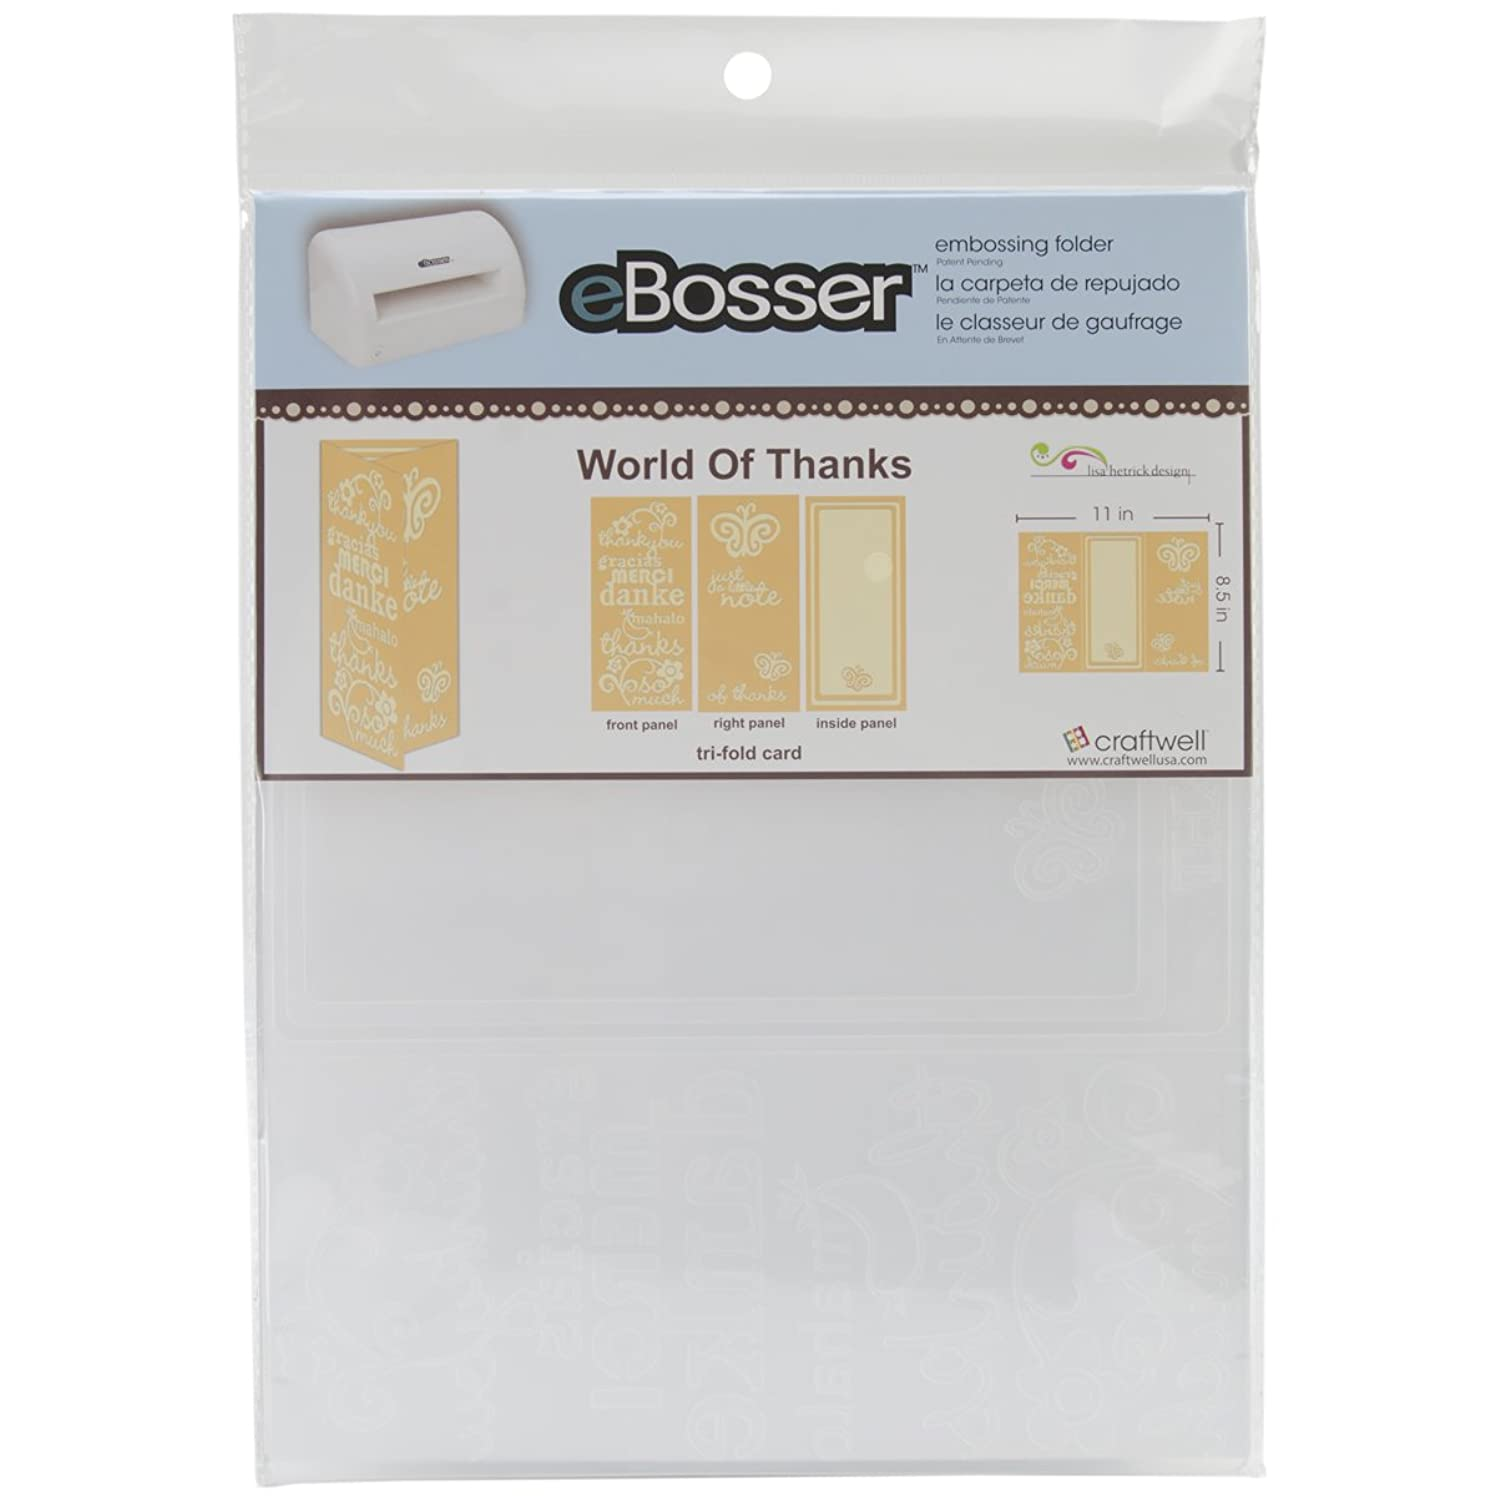 Craftwell USA World of Thanks Embossing Folder, 8.5 by 11-Inch